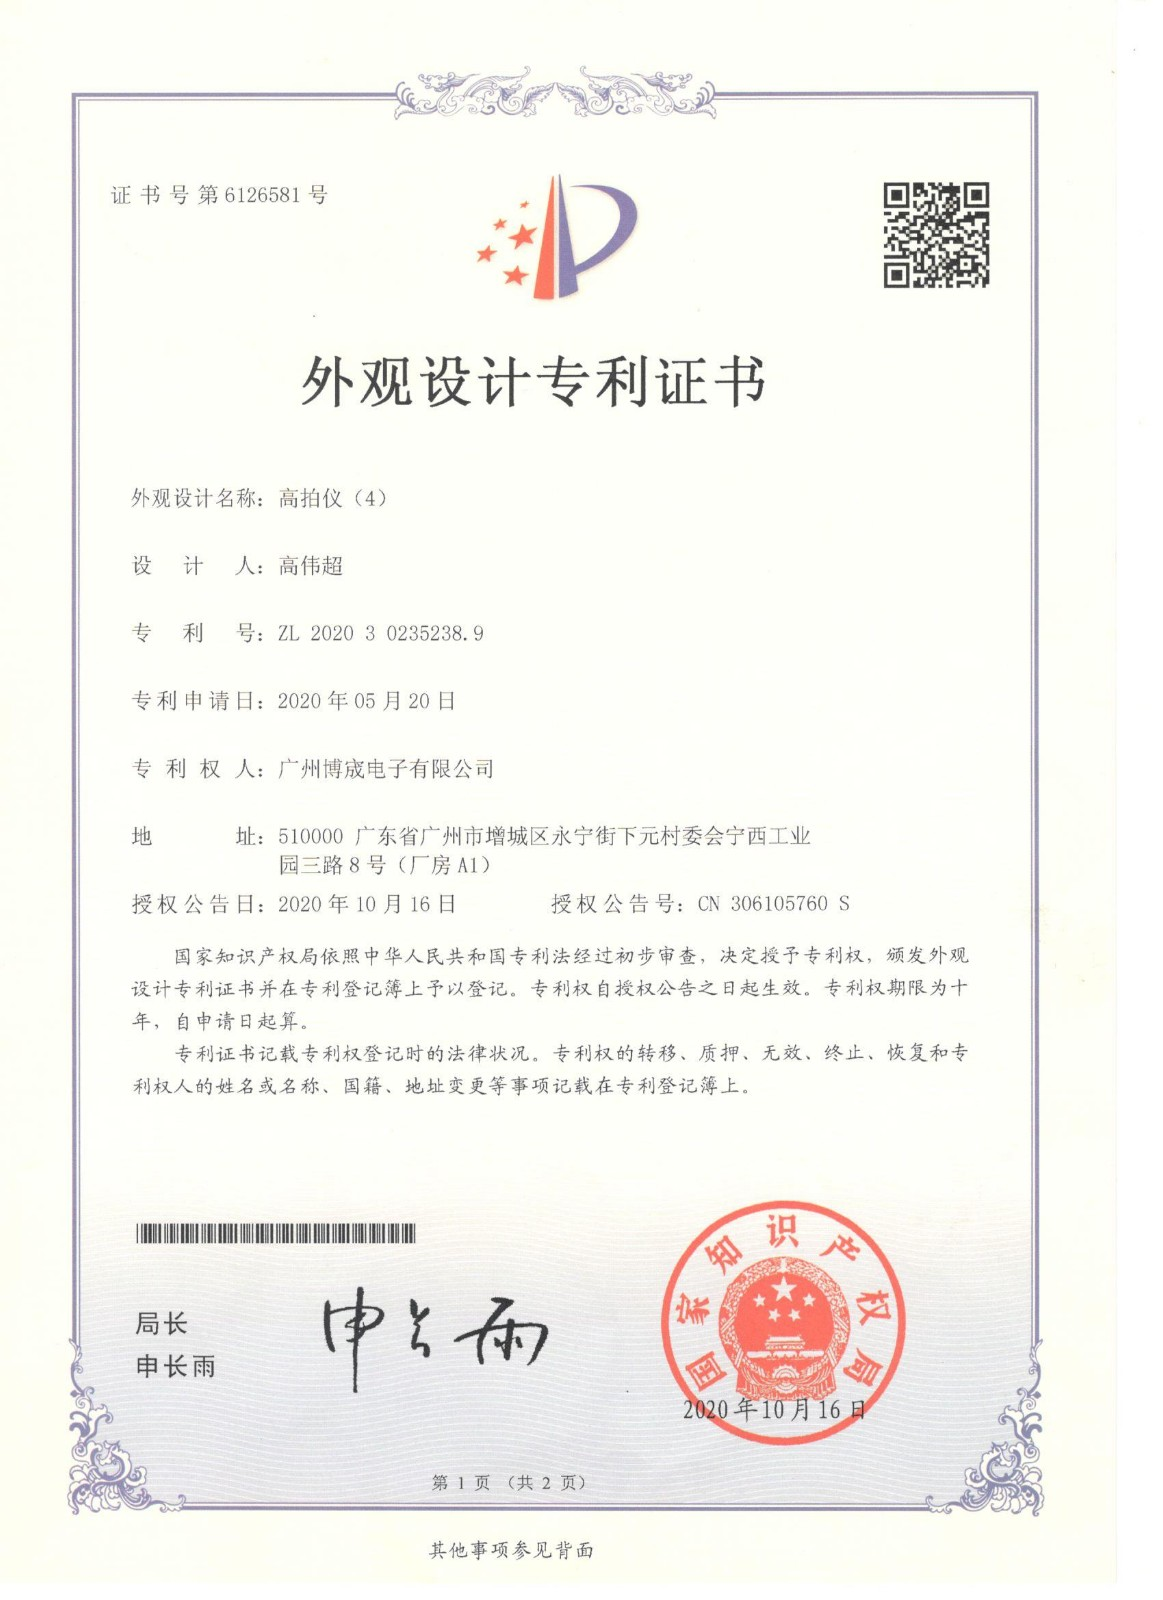 Appearance patent certificate 4